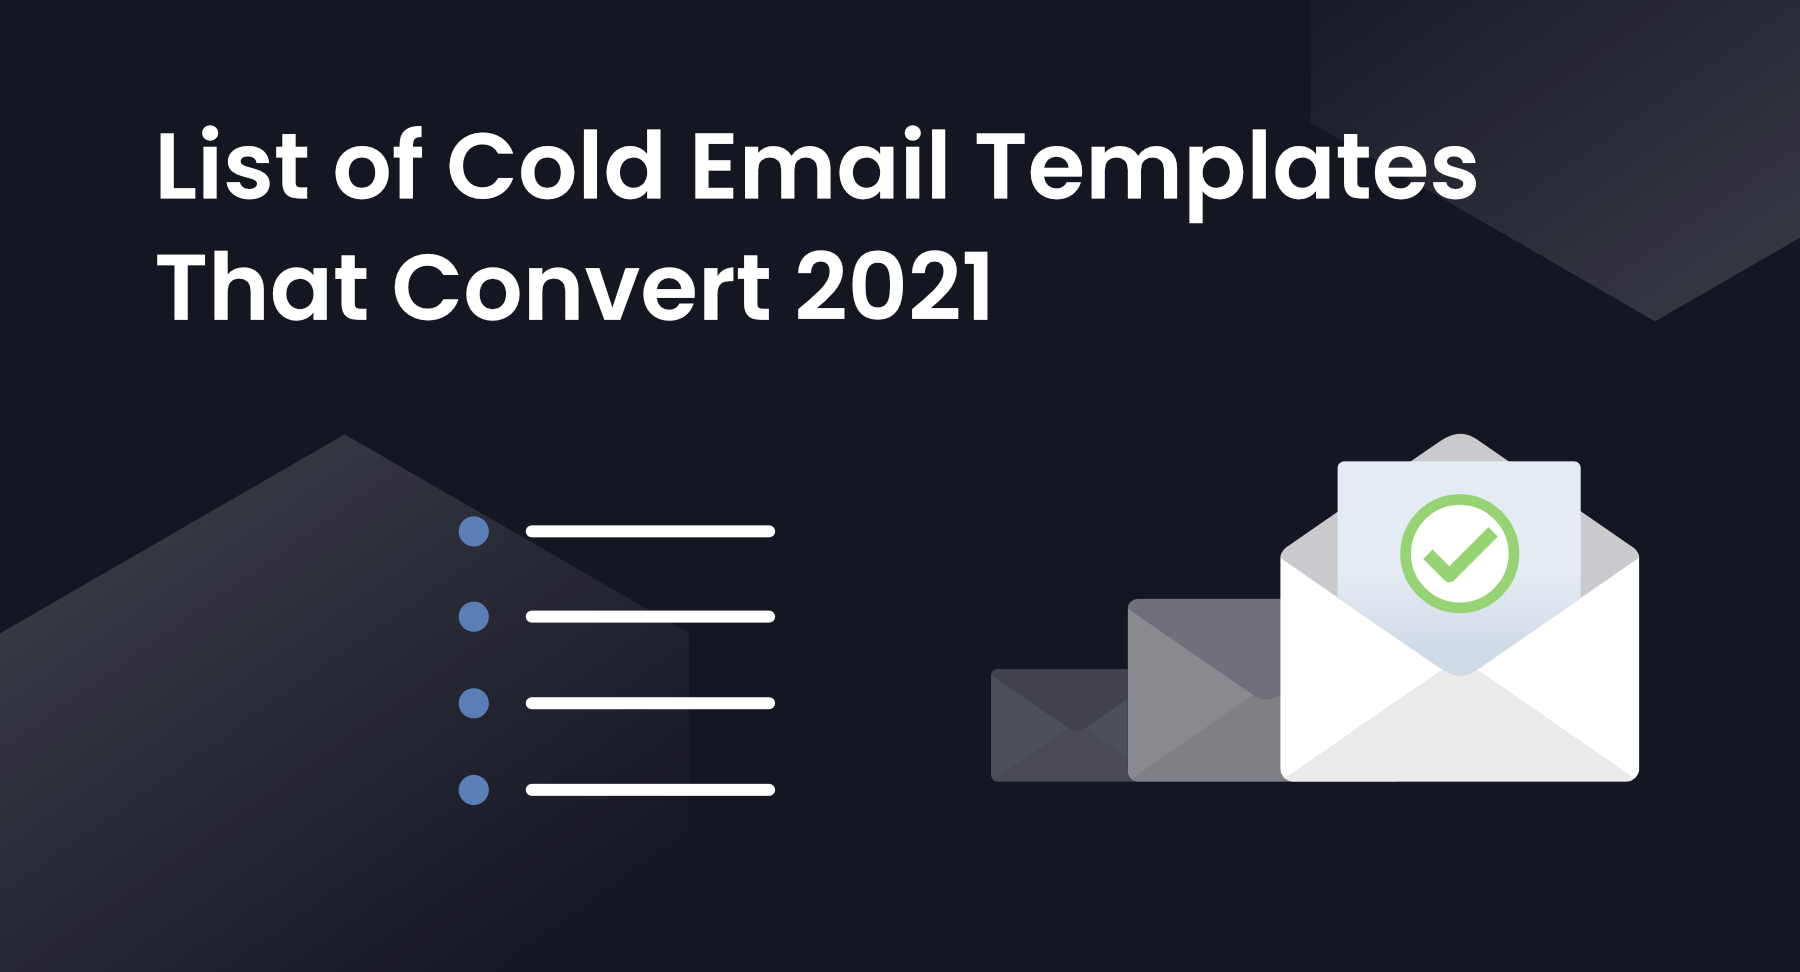 List of Cold Email Templates That Convert 2021